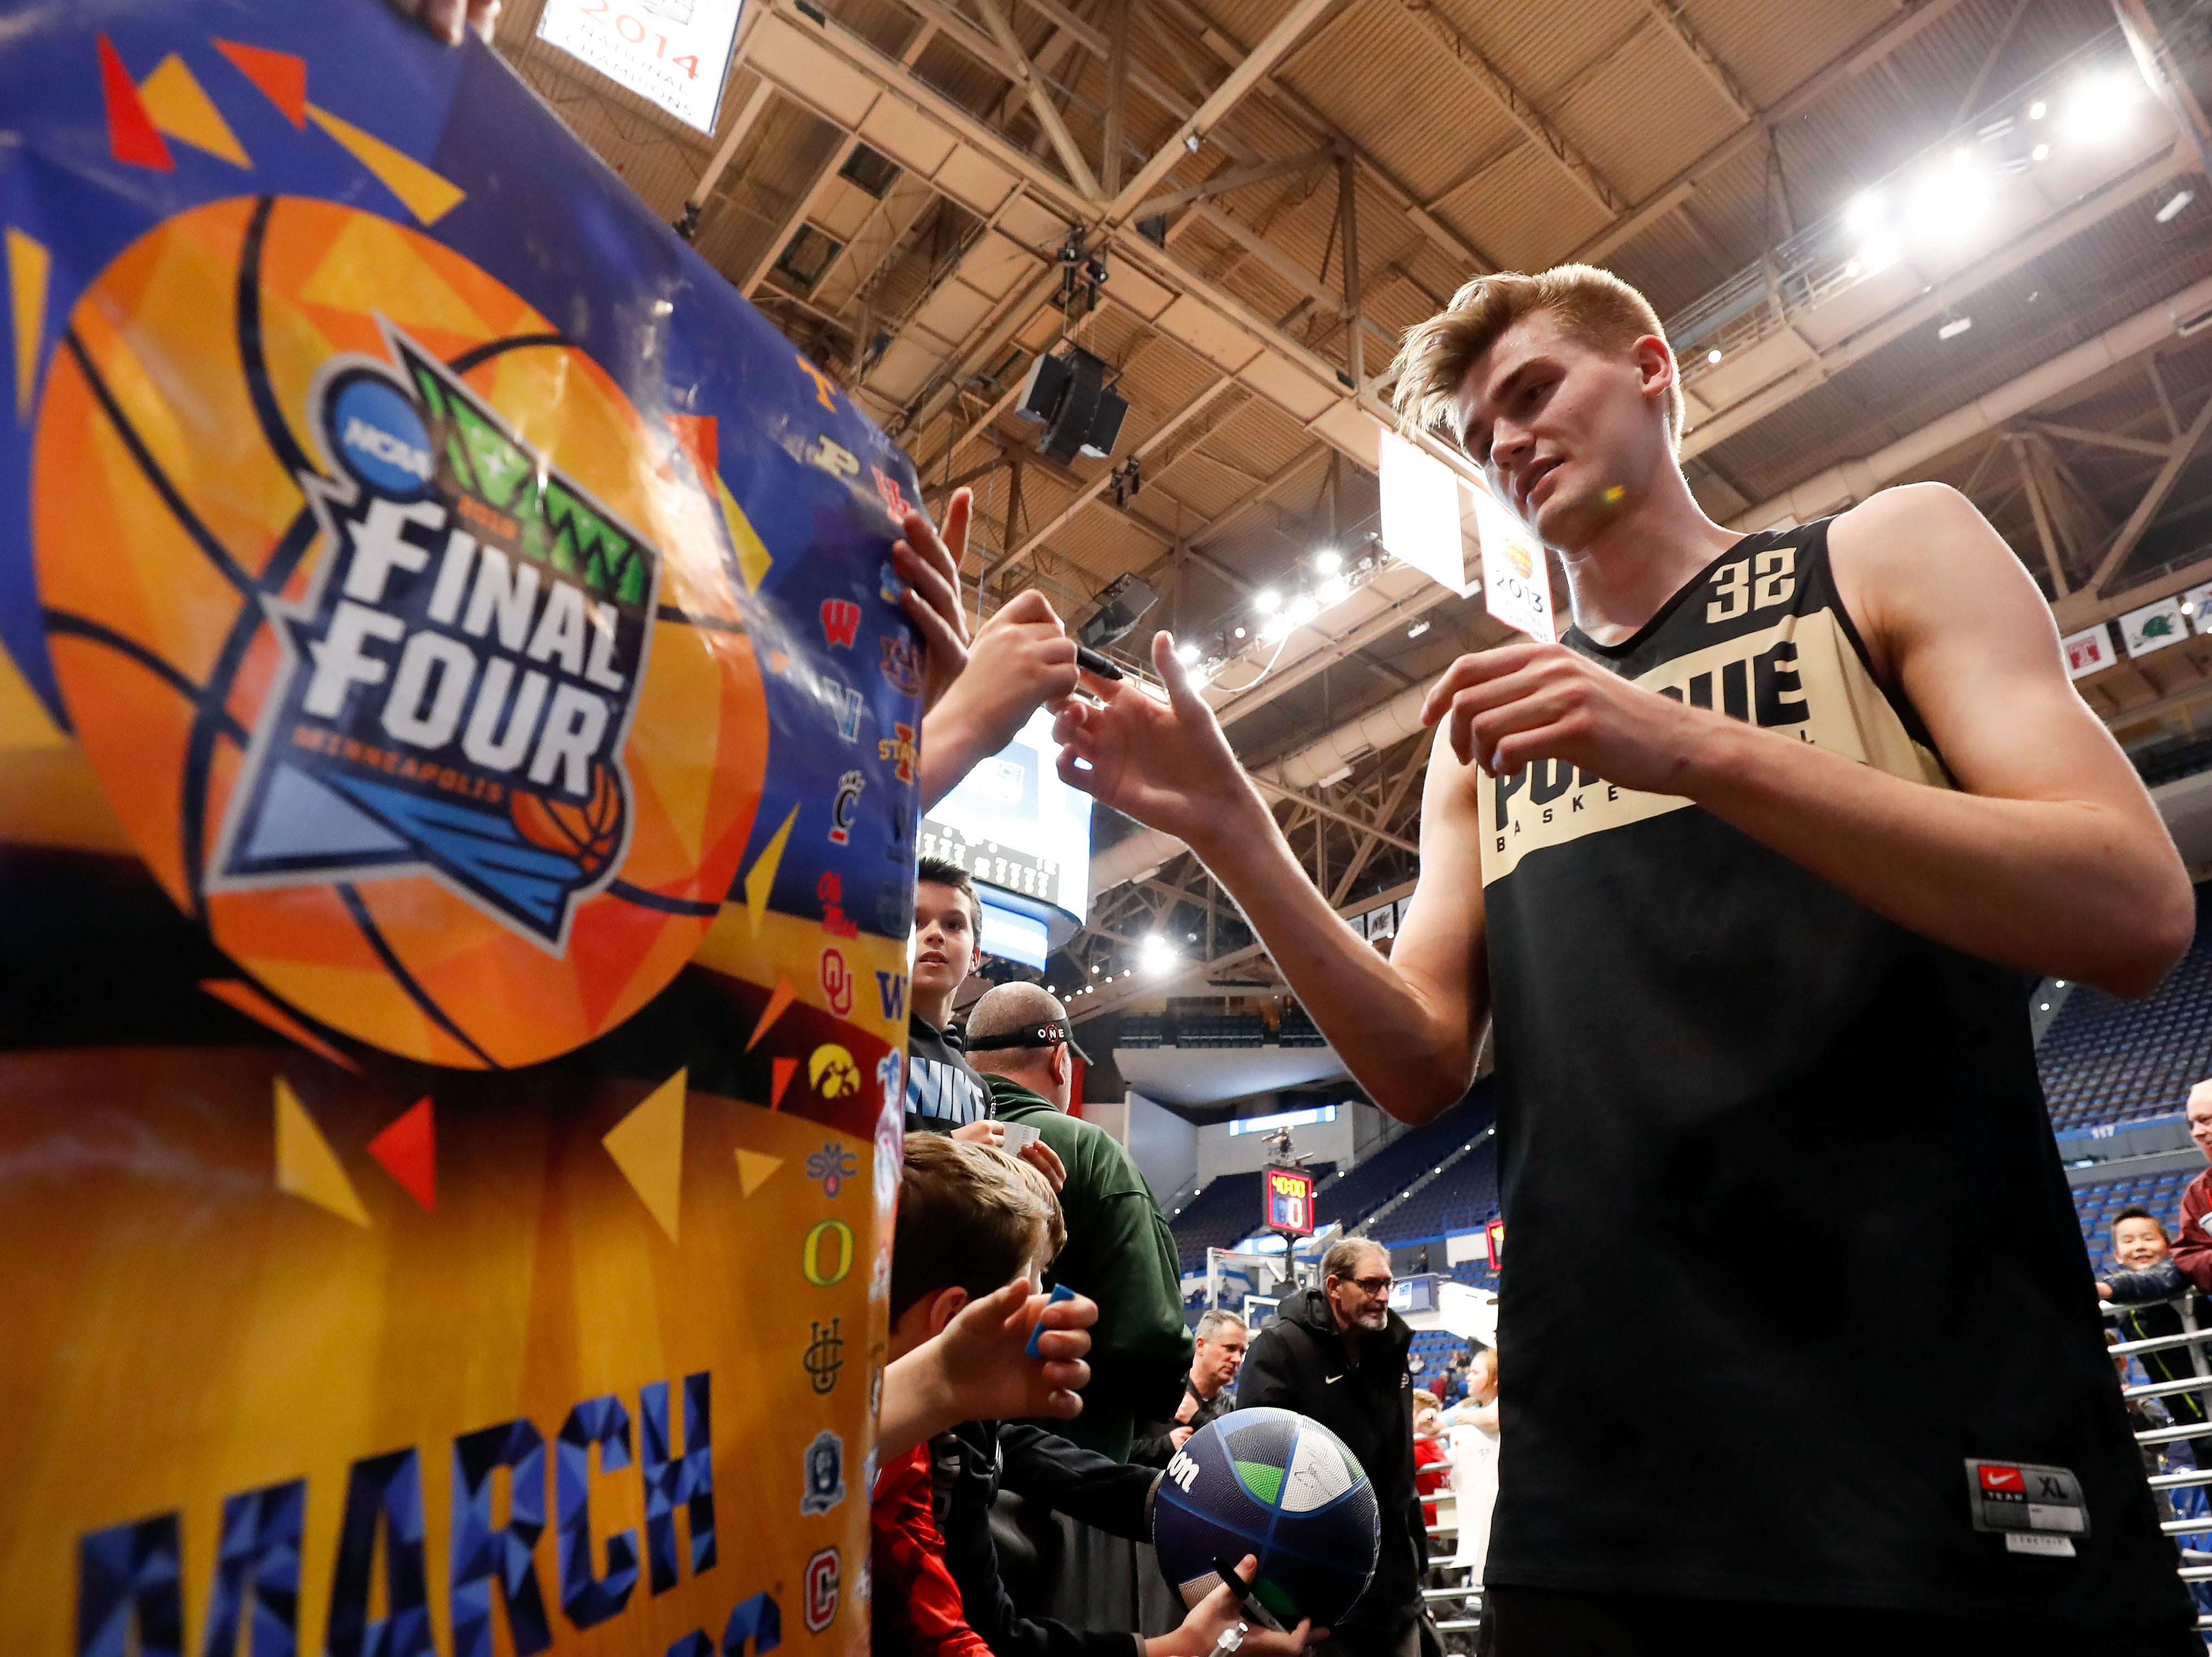 Mar 20, 2019; Hartford, CT, USA; Purdue Boilermakers center Matt Haarms (32) signs an autograph for fans during practice before the first round of the 2019 NCAA Tournament at XL Center. Mandatory Credit: David Butler II-USA TODAY Sports